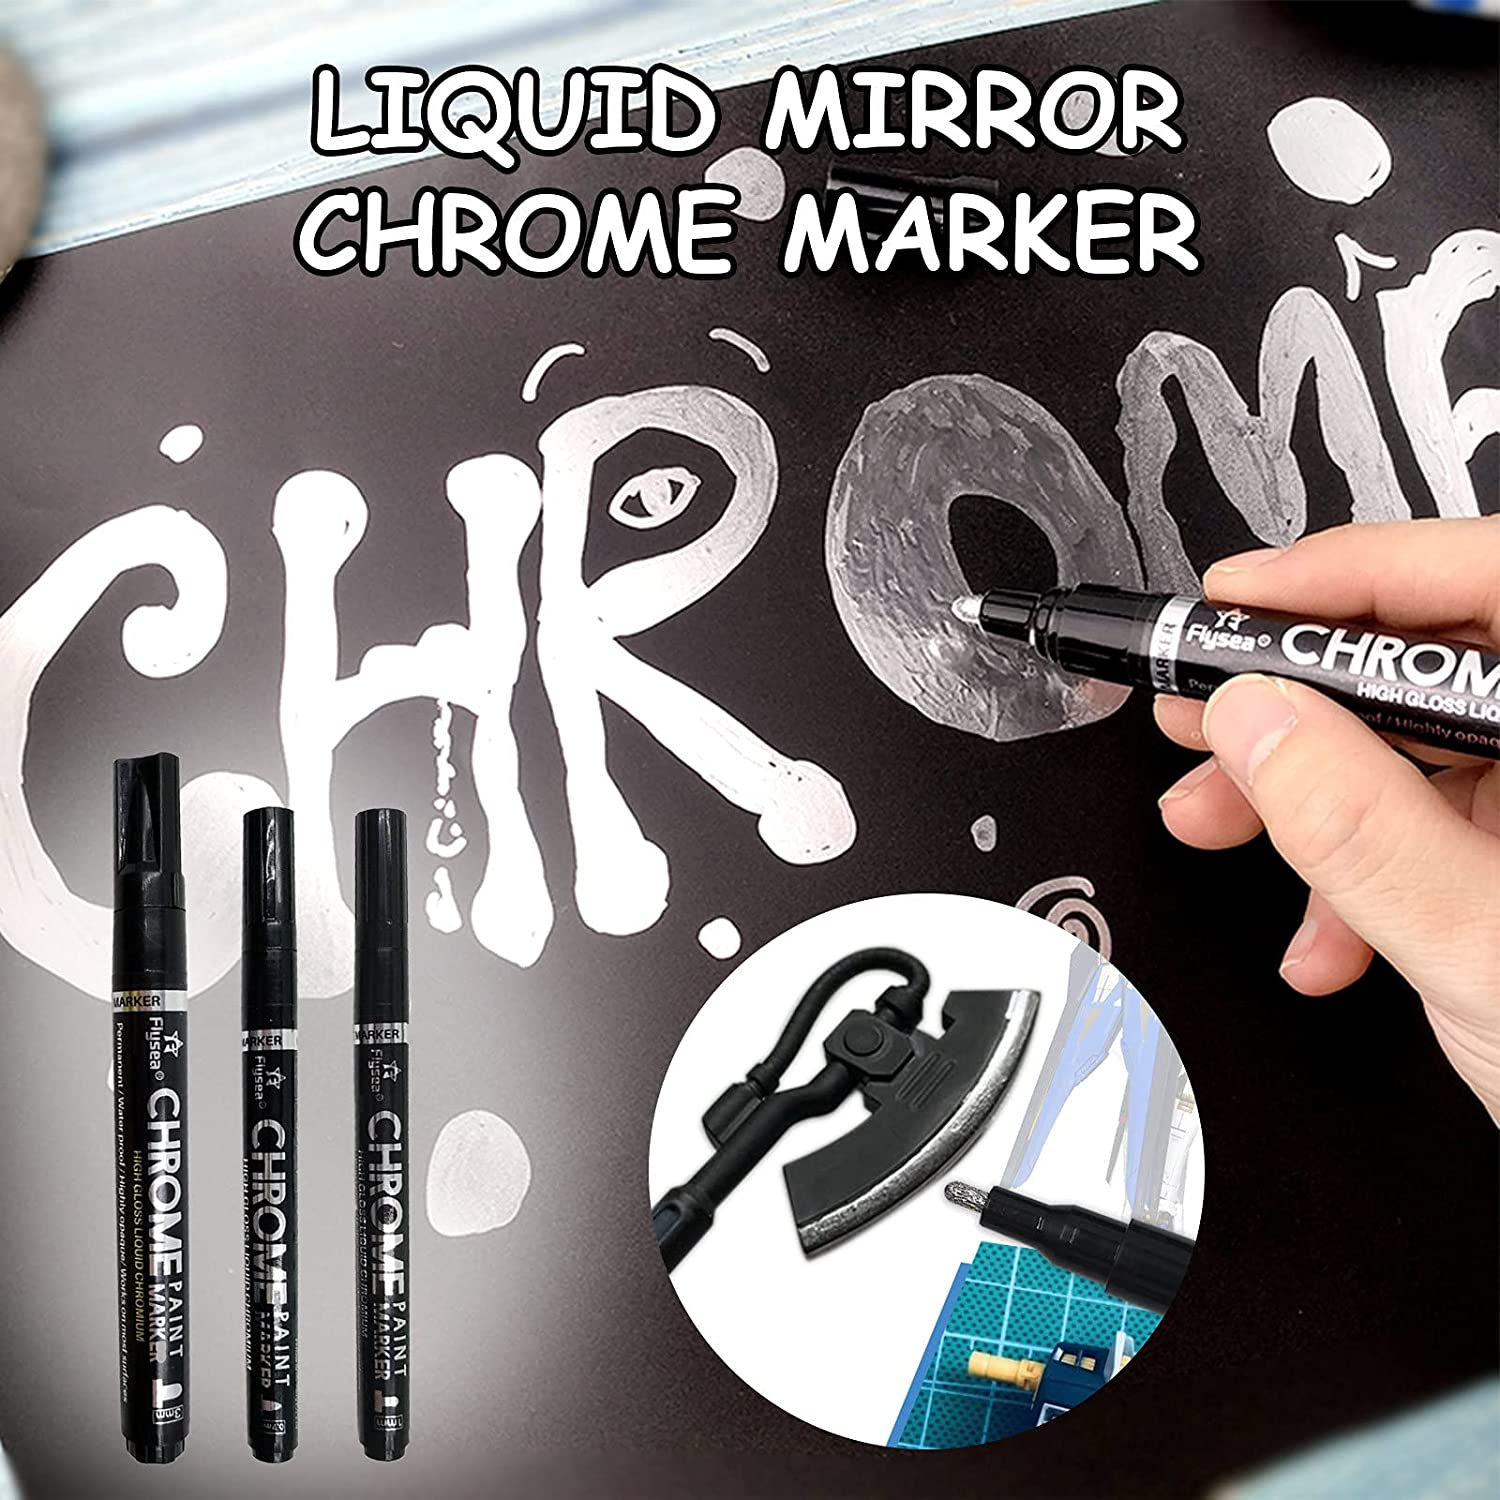 Buy Mirror Chrome Finish Silver Mirror Marker - High Gloss Mirror Pen,  Reflective Paint Metal Pen, Chrome Plated Marker - Smooth Flow,  Permanent-Last Ink, High-Covering for Smooth Surfaces (3pc) Online in  Taiwan.